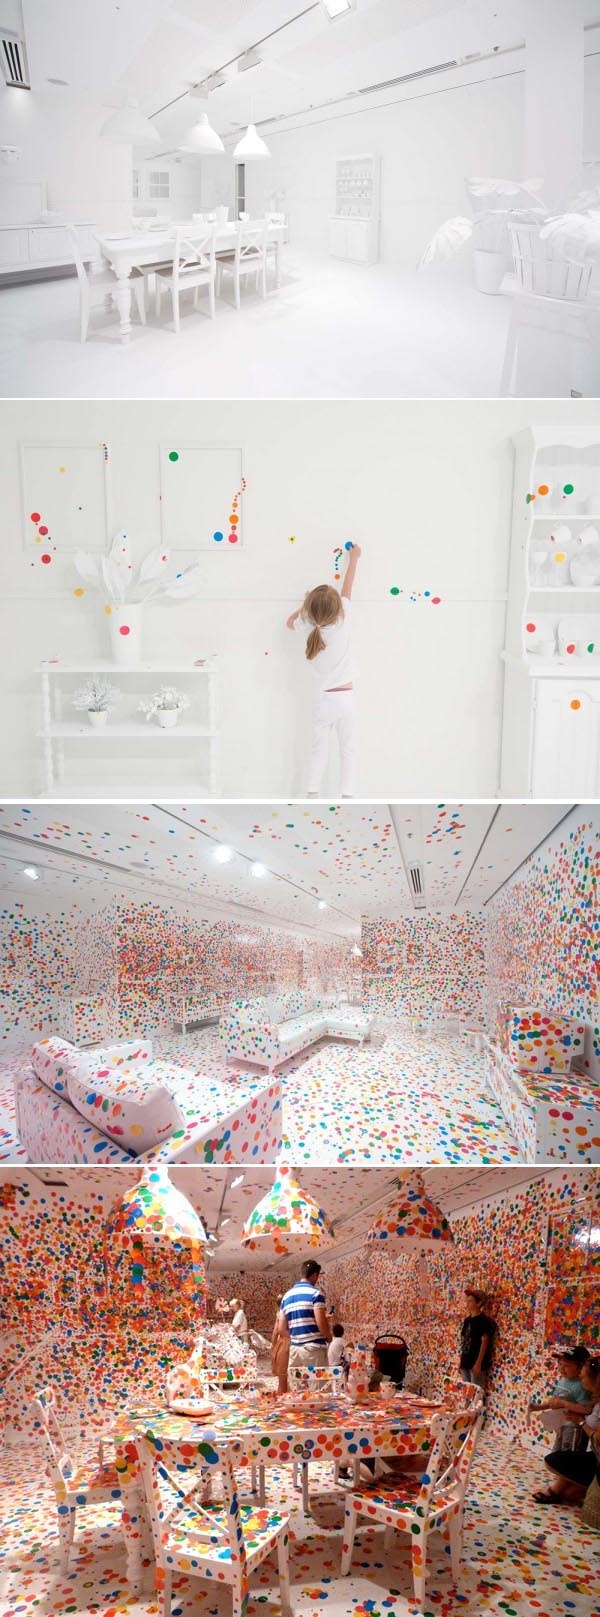 One white room and a lot of kids with a lot of stickers. A great installation of Yayoi Kusuma to show art isn't boring at all...